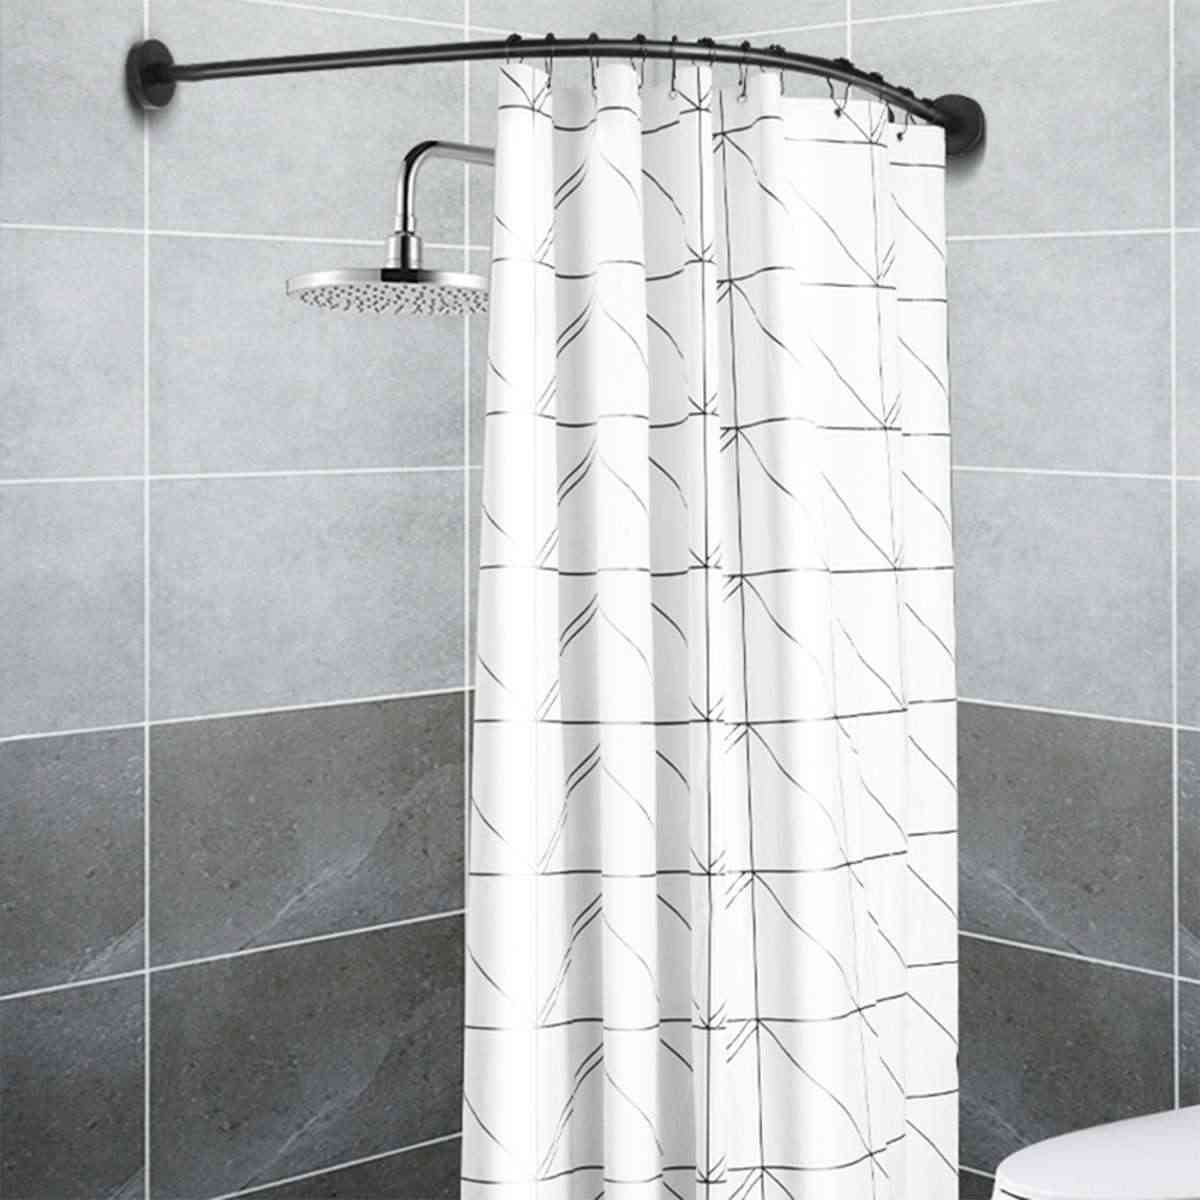 Picture of: Extendable Corner Shower Curtain Rod Pole Black Stainless Steel Rail Rod Bar Bath Door Hardware Heavy Loaded With 12 Metal Hooks Shower Curtain Poles Aliexpress